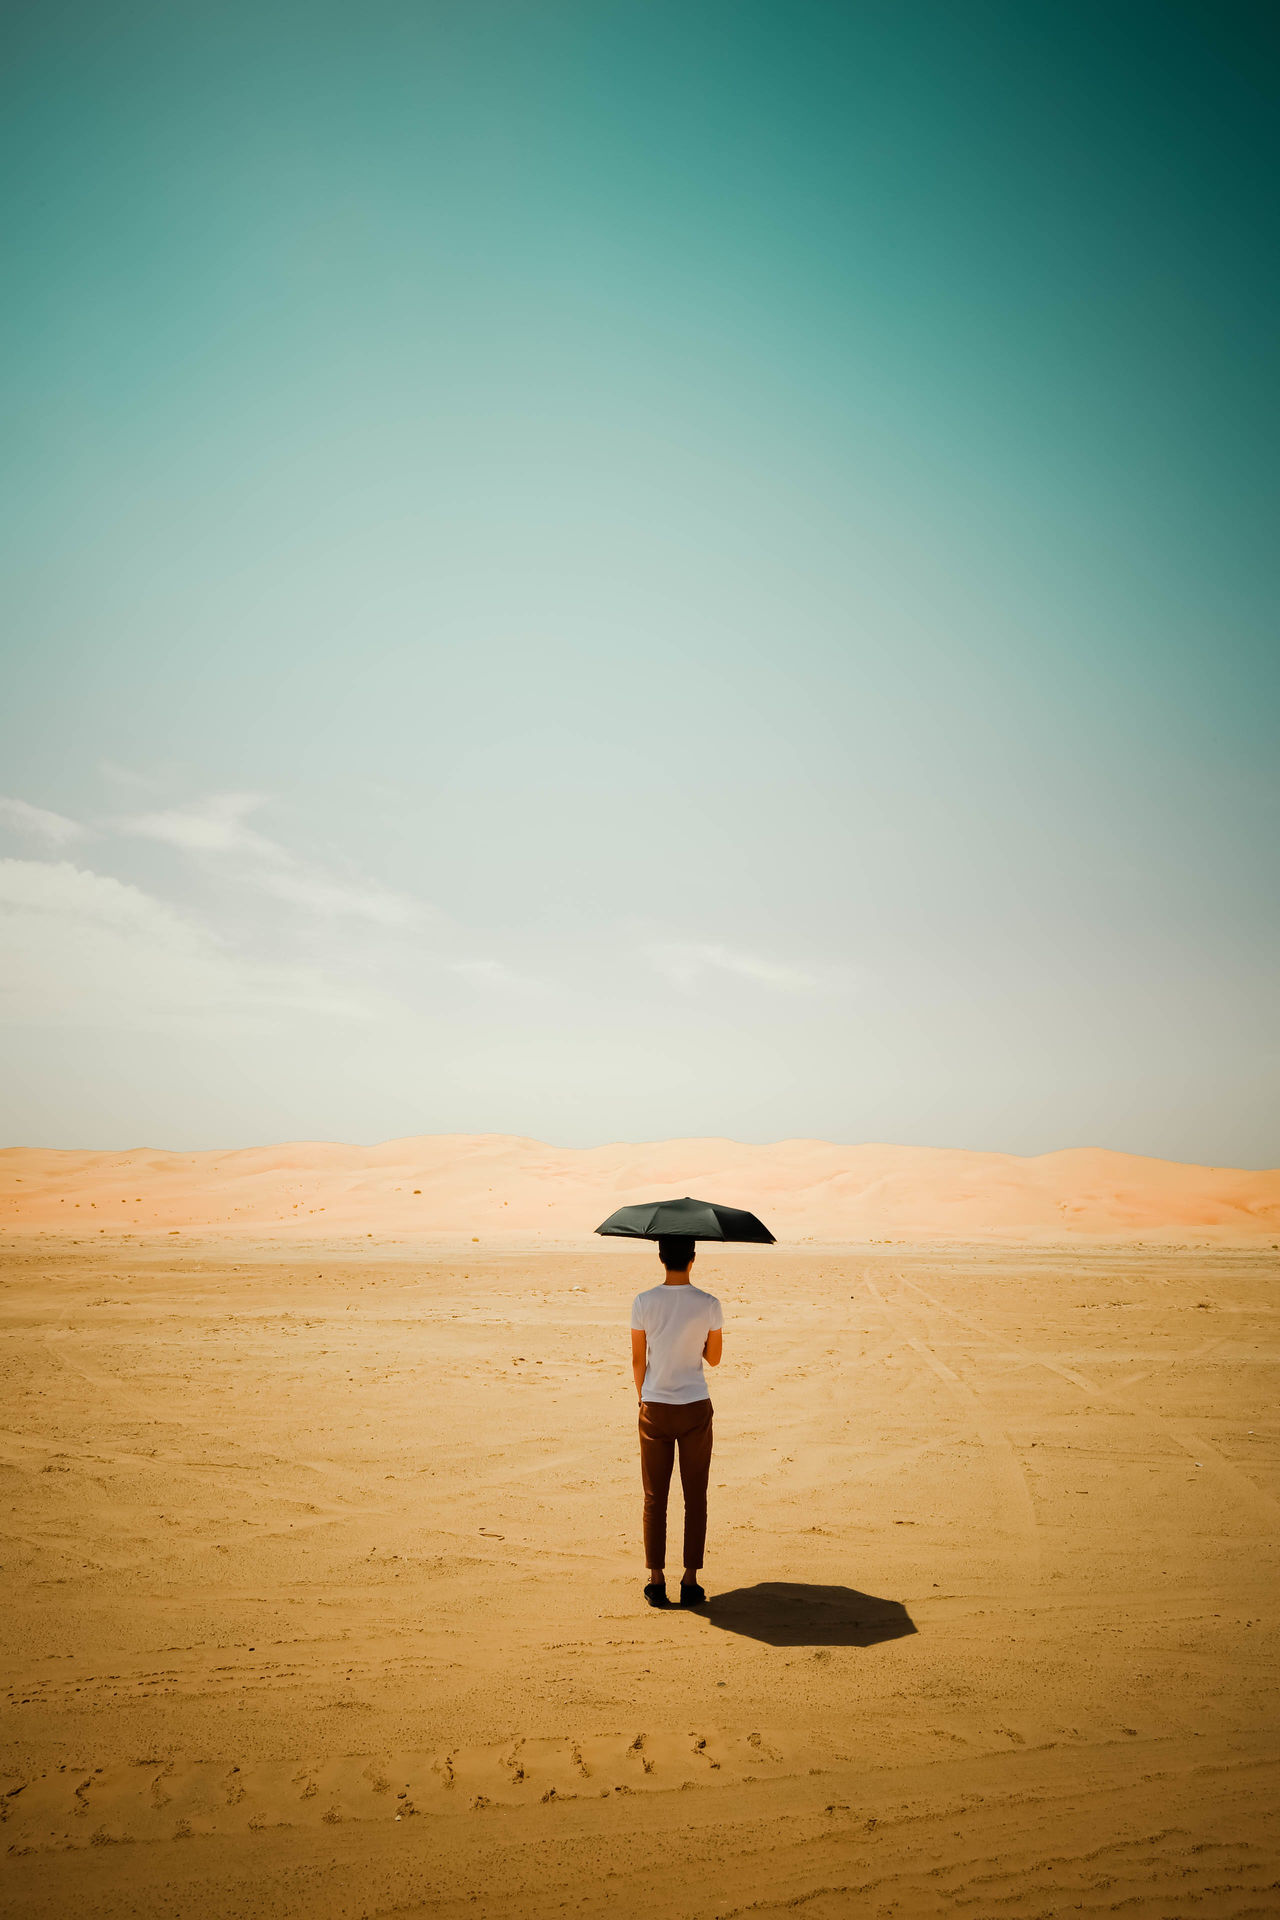 Rear view of man standing in desert with umbrella